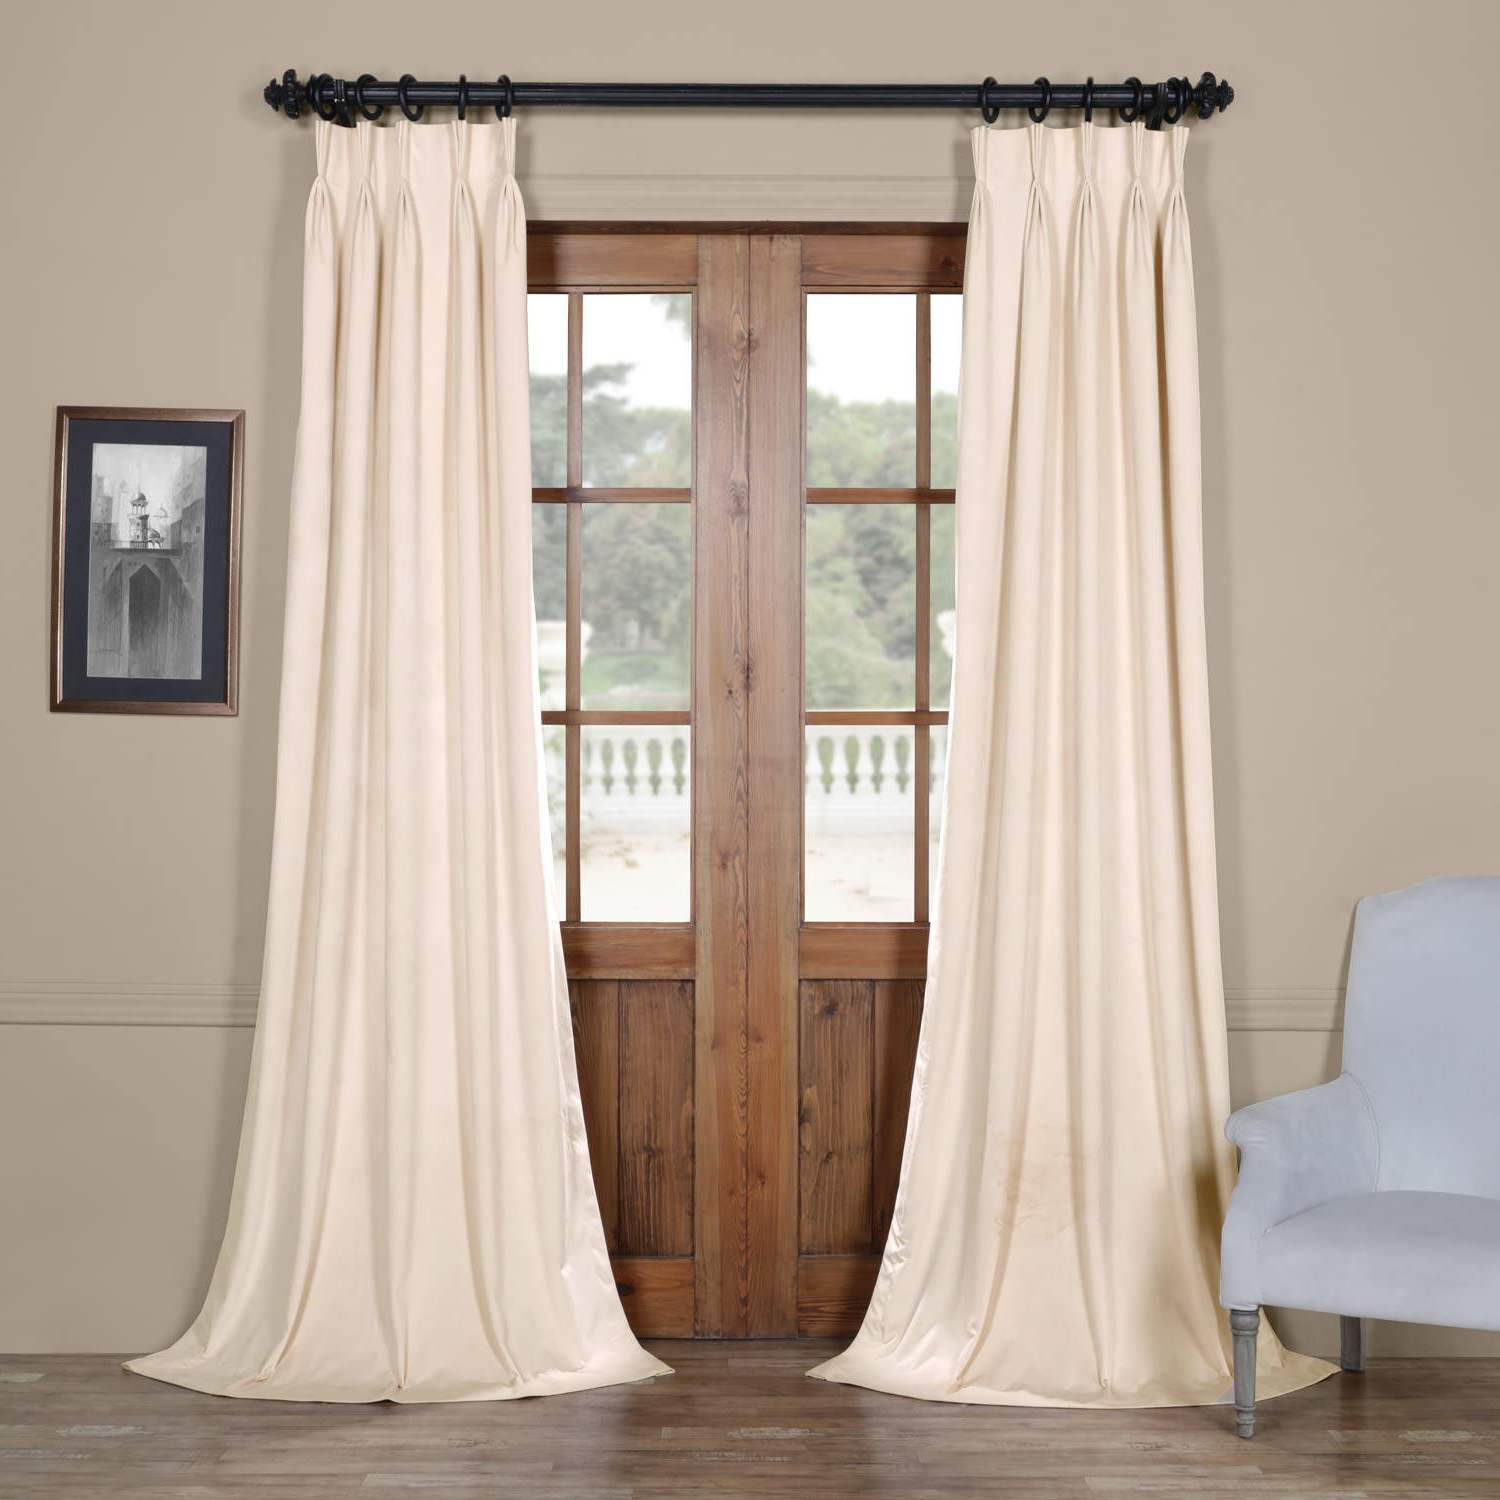 """Most Recent Vpch 120601 96 Fp Signature Pleated Blackout Velvet Curtain, 25 X 96"""", Ivory With Regard To Signature Ivory Velvet Blackout Single Curtain Panels (View 9 of 20)"""